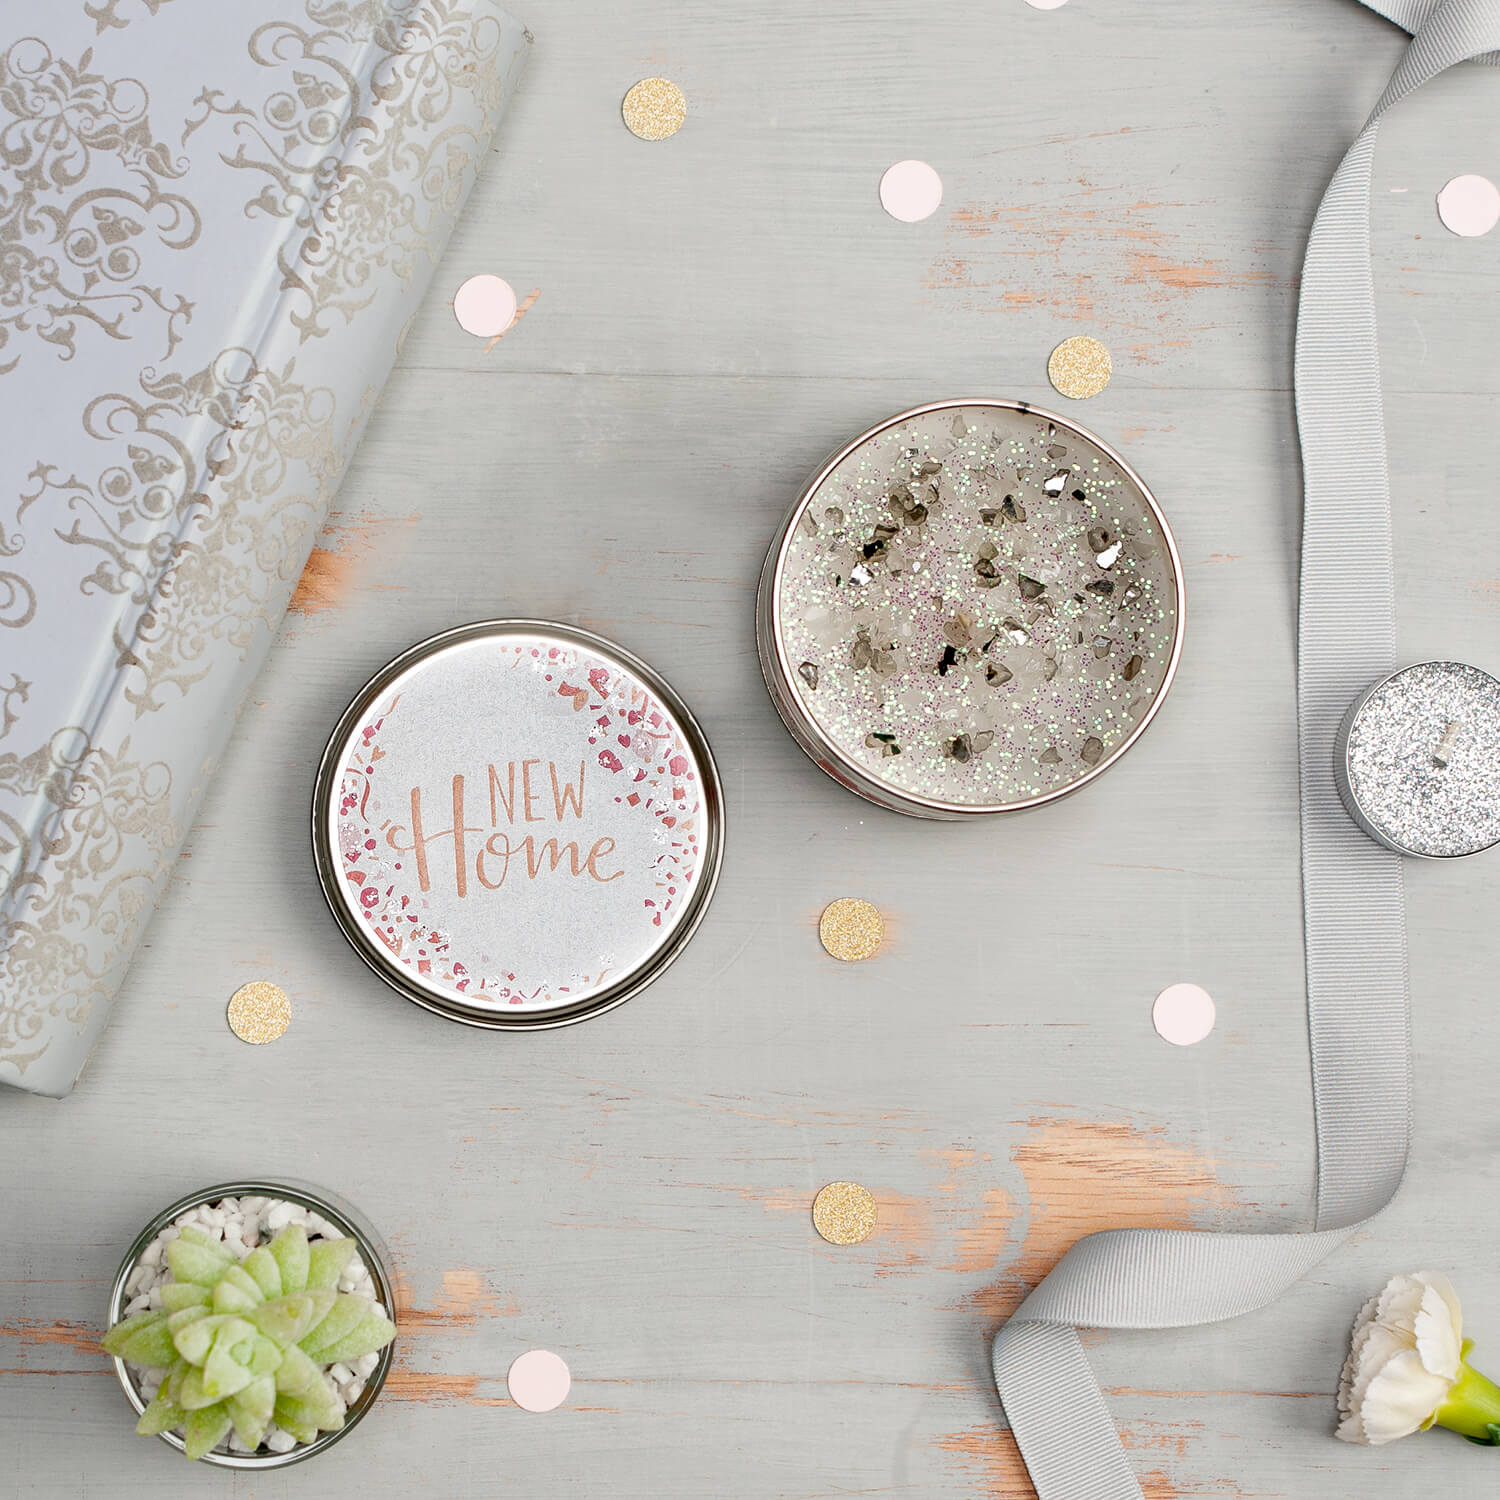 Overhead flatlay type photography of scented candle